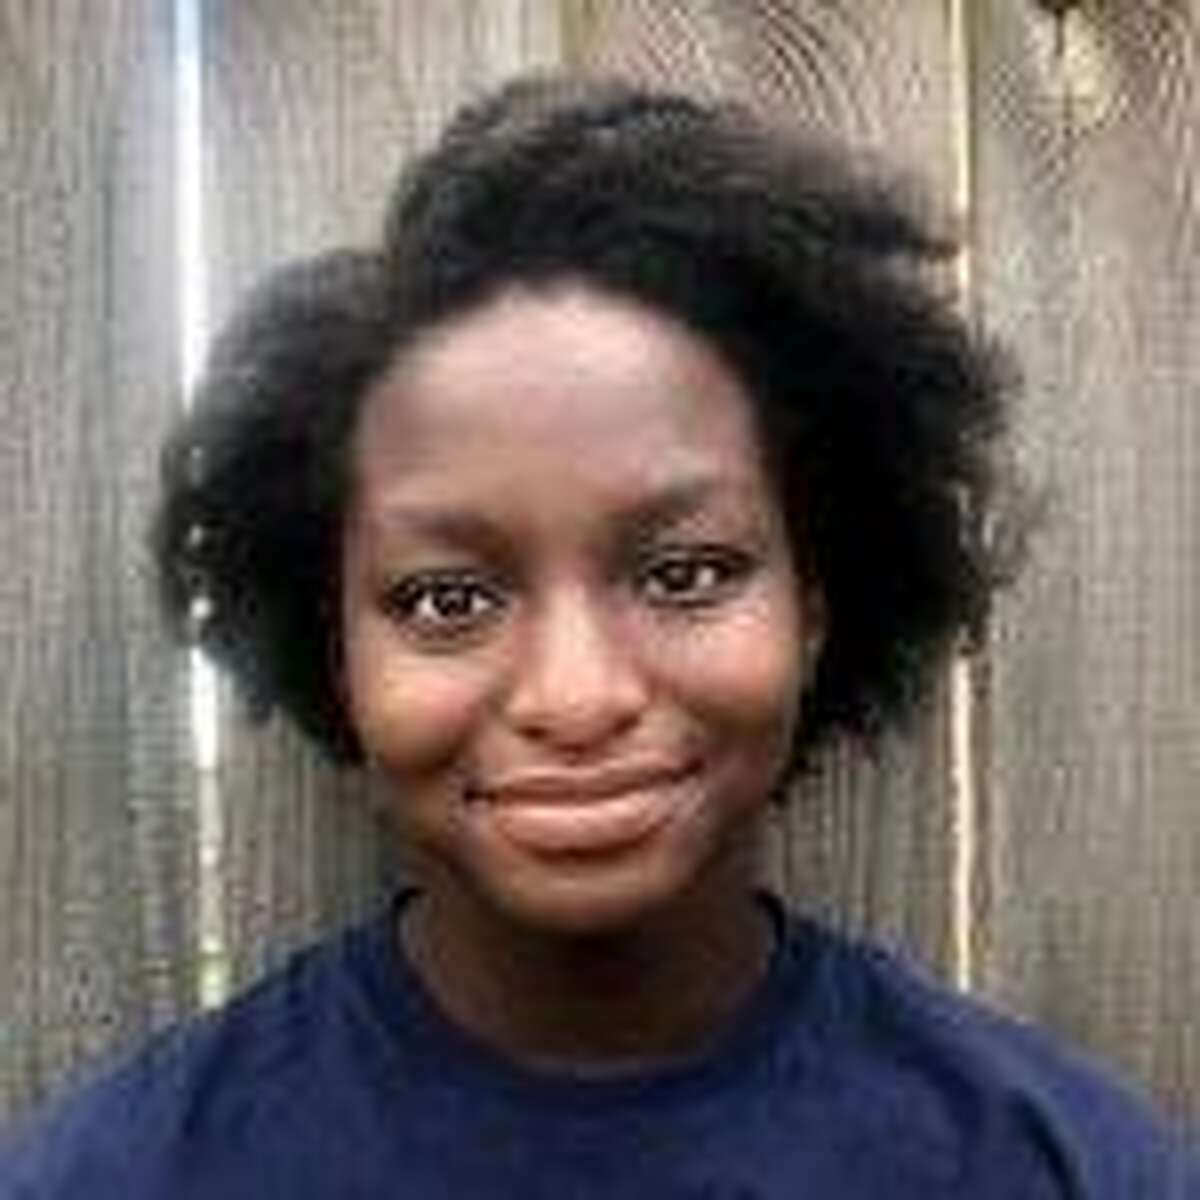 Unyime Usua, pictured here, is a sophomore at Tompkins High School in Katy. She worked with her fellow student, Shamiya Lin, to start Youth Inventa, a nonprofit focused on providing opportunities for young students to learn physics. The organization has introduced a free virtual summer program that is currently accepting applications.